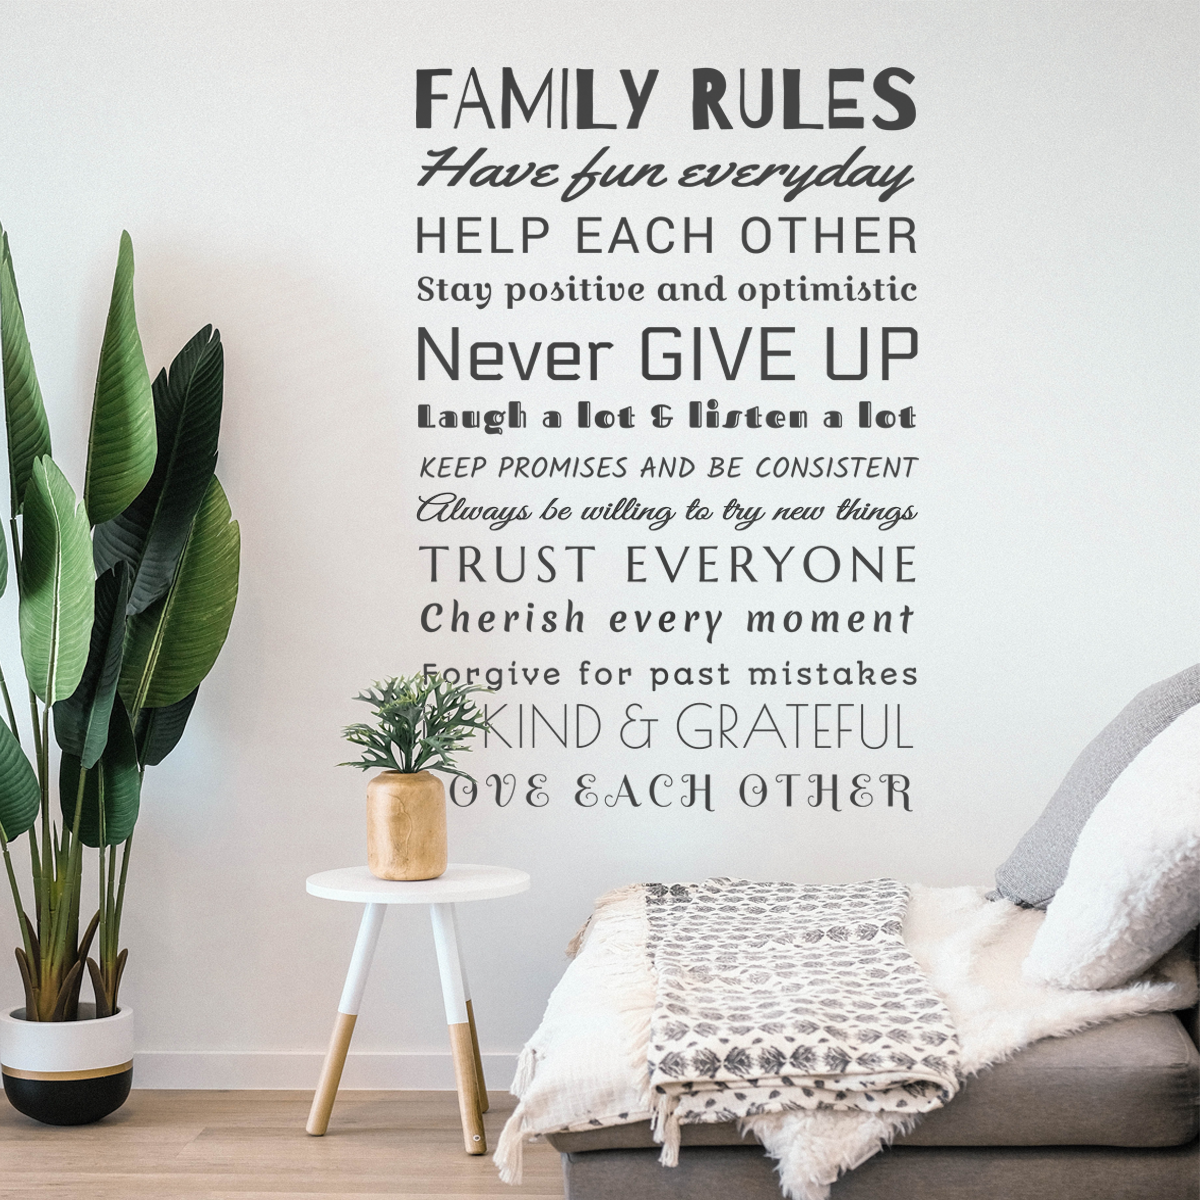 Decorative lettering wall sticker by CaptainText: Family rules